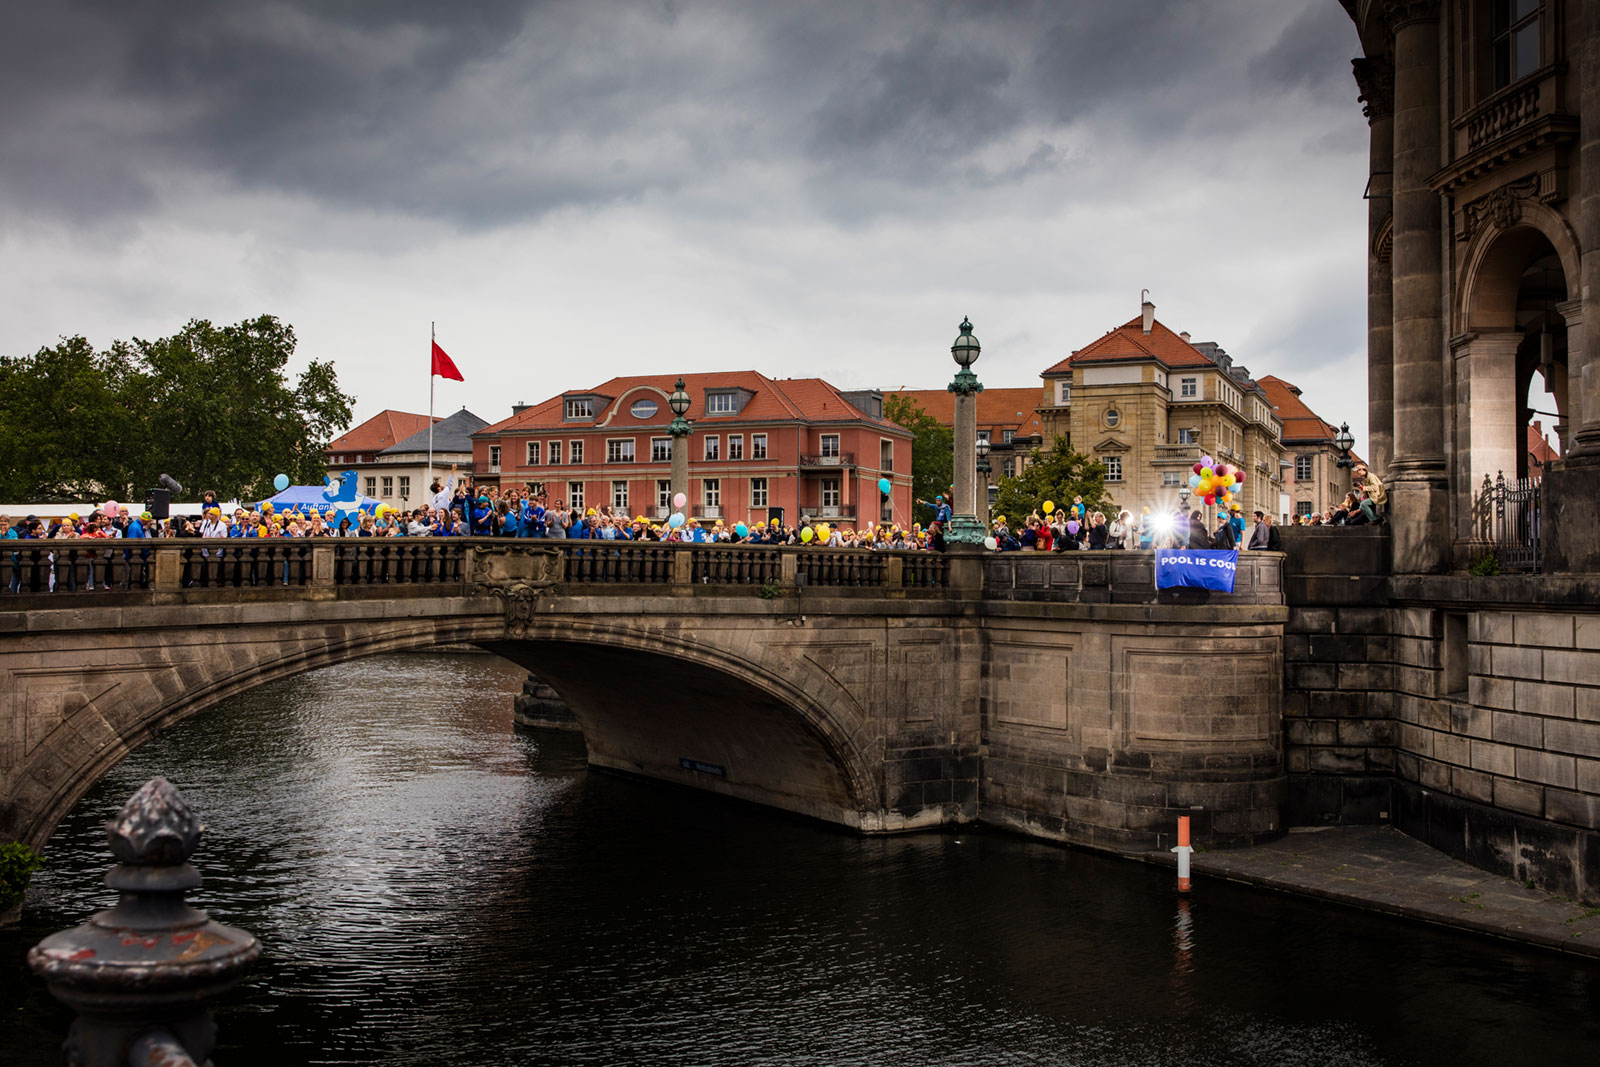 Dramatic view on the crowd that gathered despite the cancellation of the swimming. © Axel Schmidt